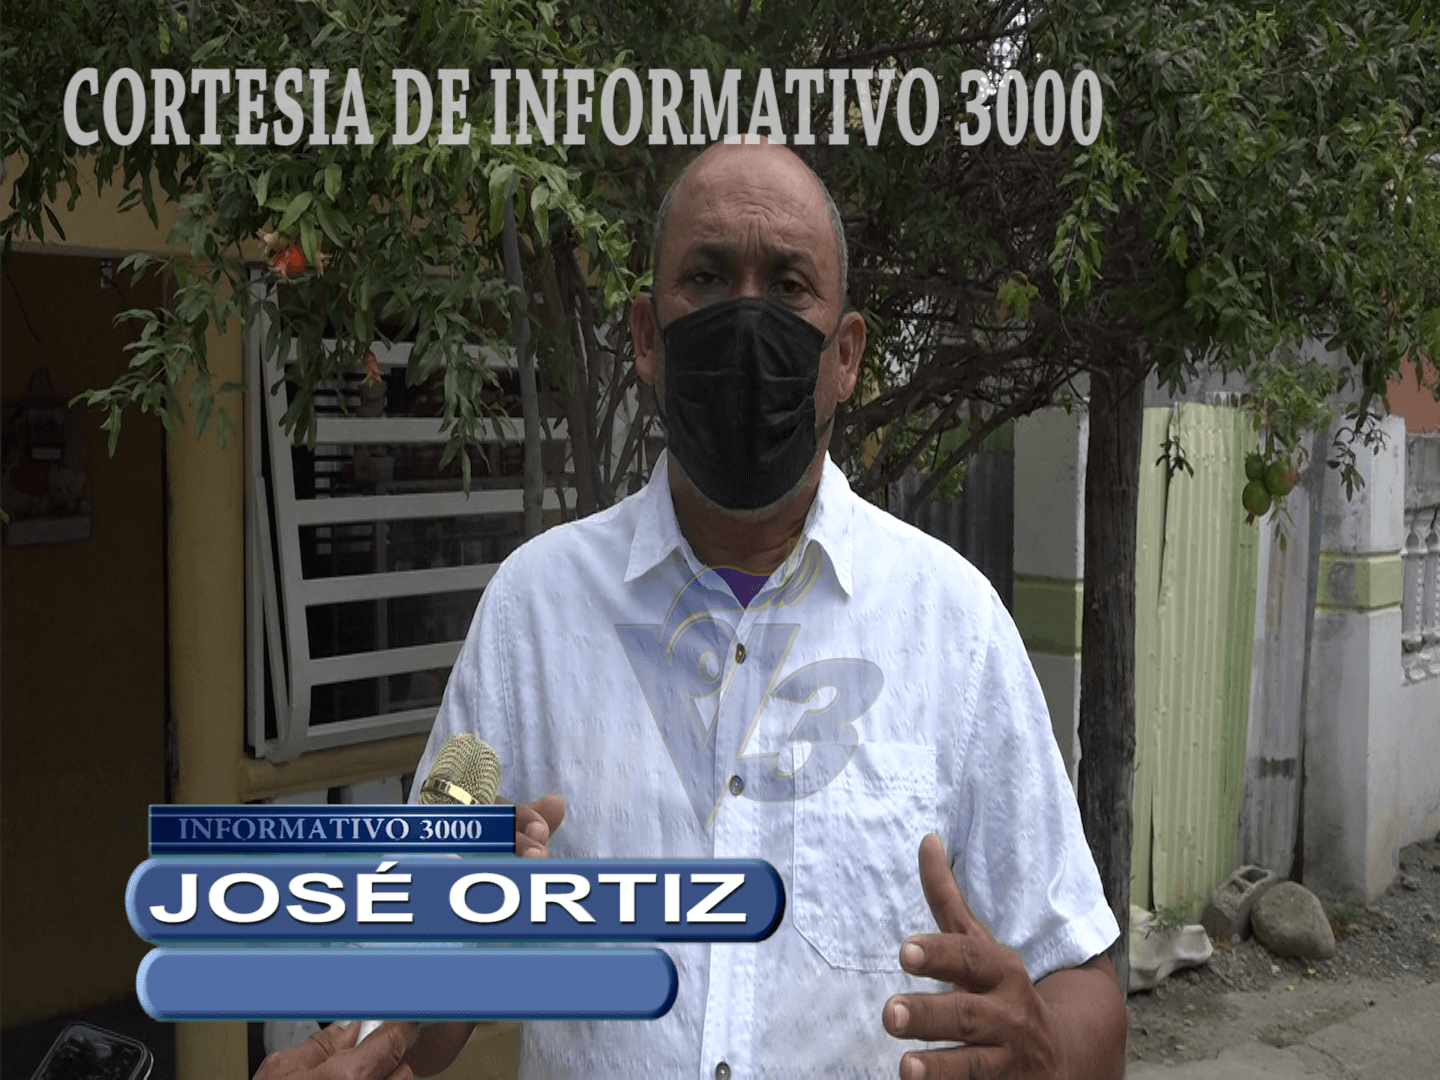 https://peraviavision.tv/wp-content/uploads/2021/04/JOS%C3%89-ORTIZ.png